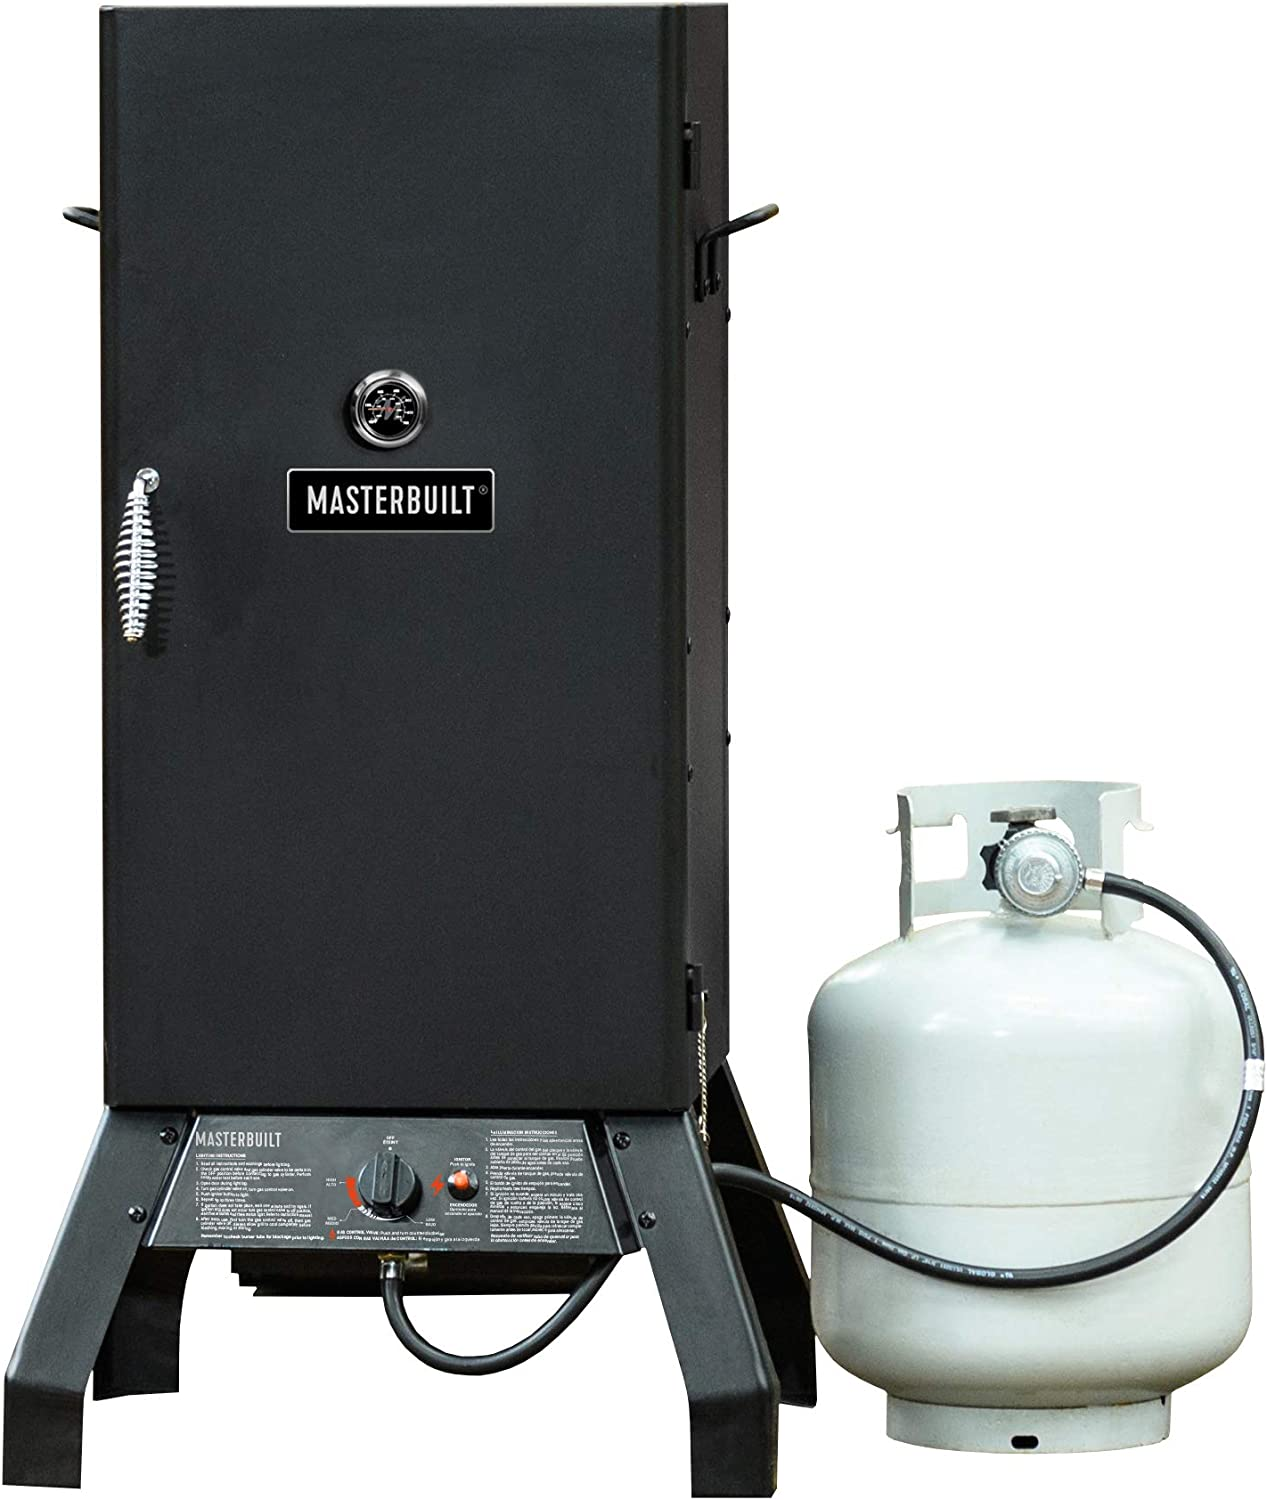 Best Budget Model - Masterbuilt MB20050511 Propane Smoker